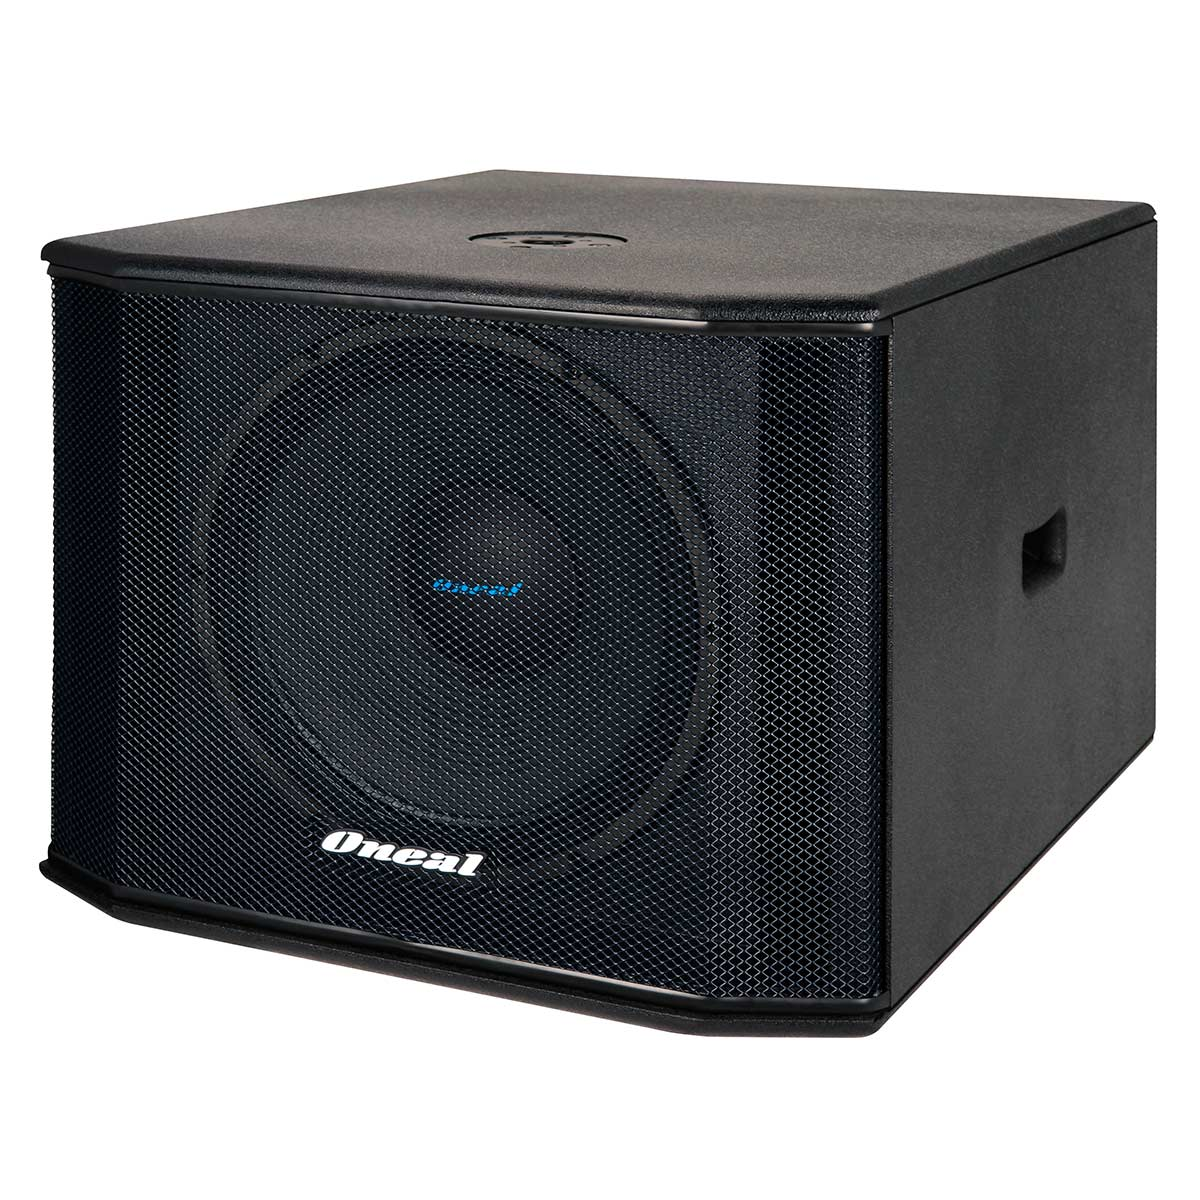 Subwoofer Passivo Fal 15 Pol 300W - OBSB 2215 Oneal